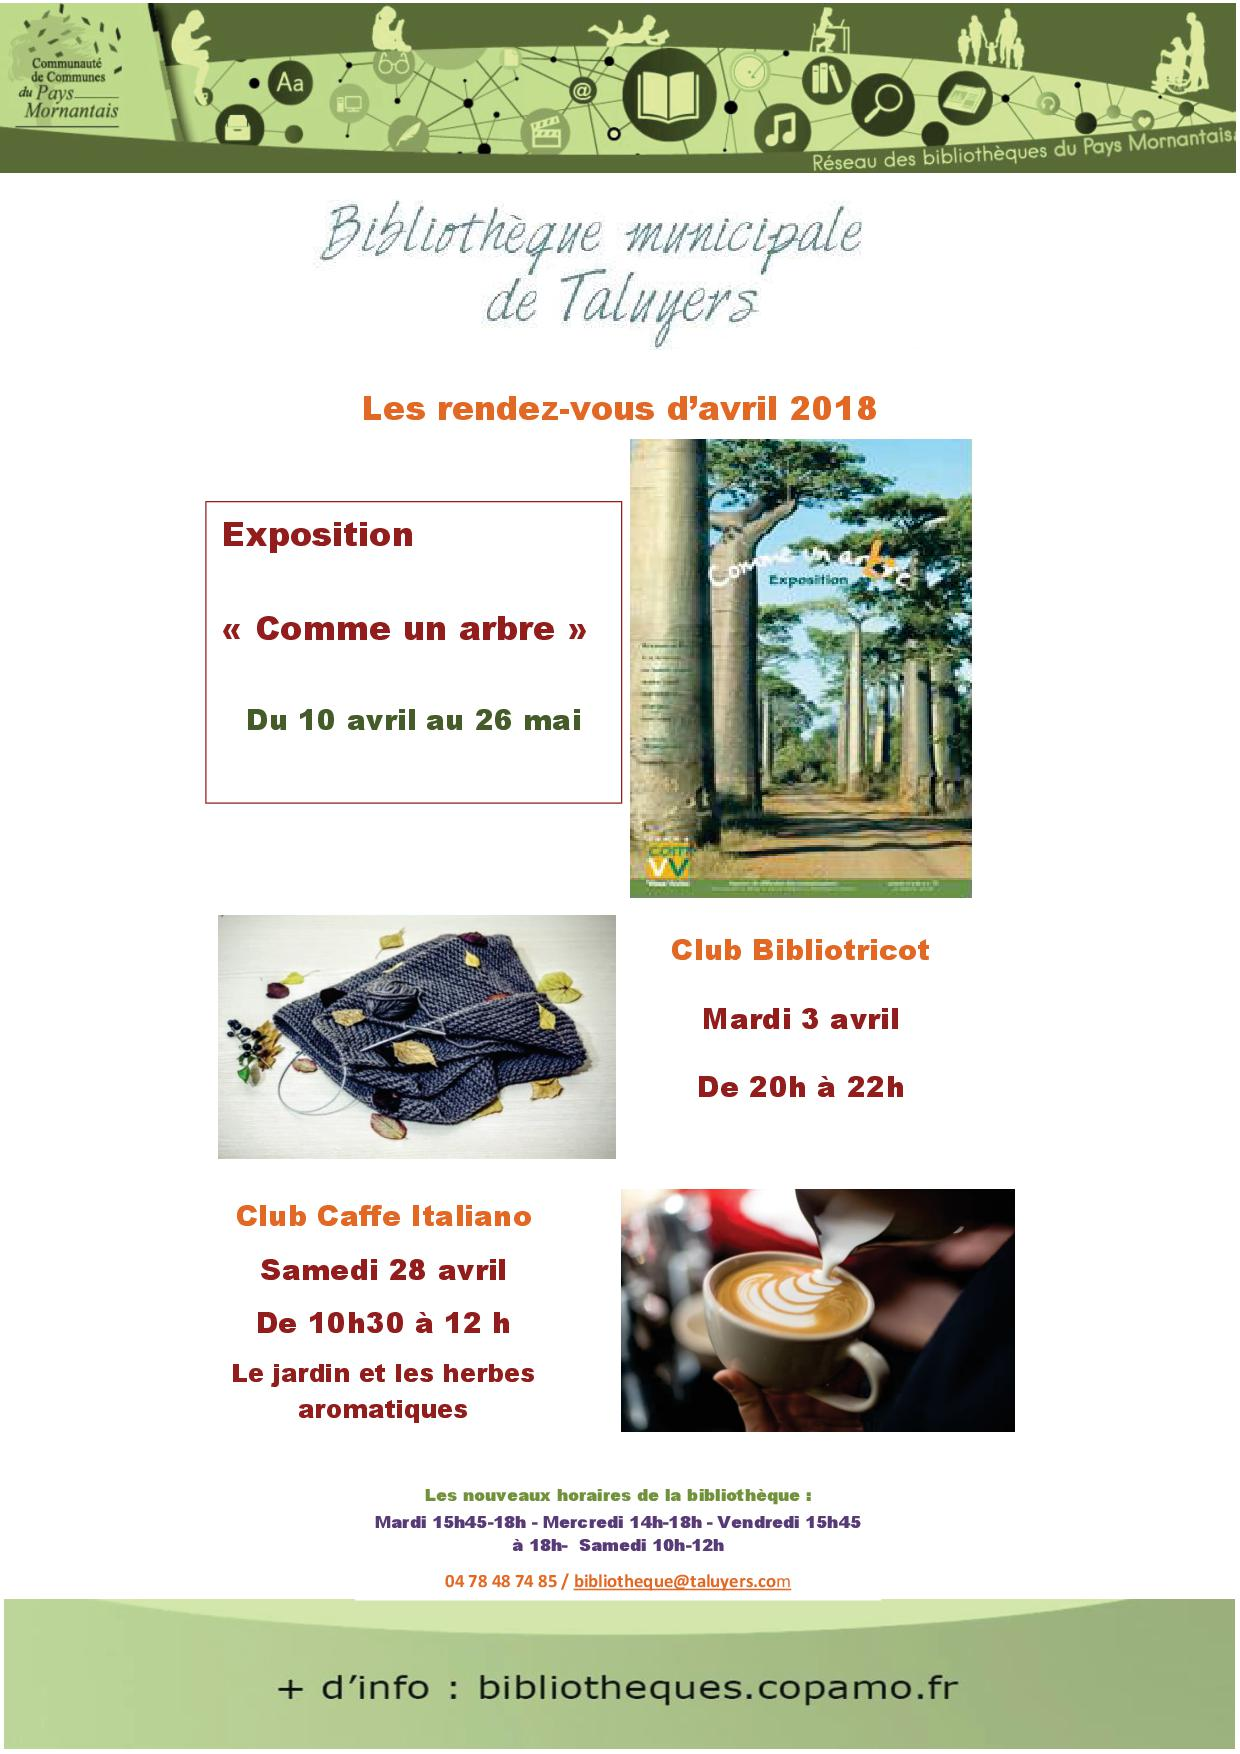 2018-04 BIBLIOTHEQUE Animations Taluyers  avril 18